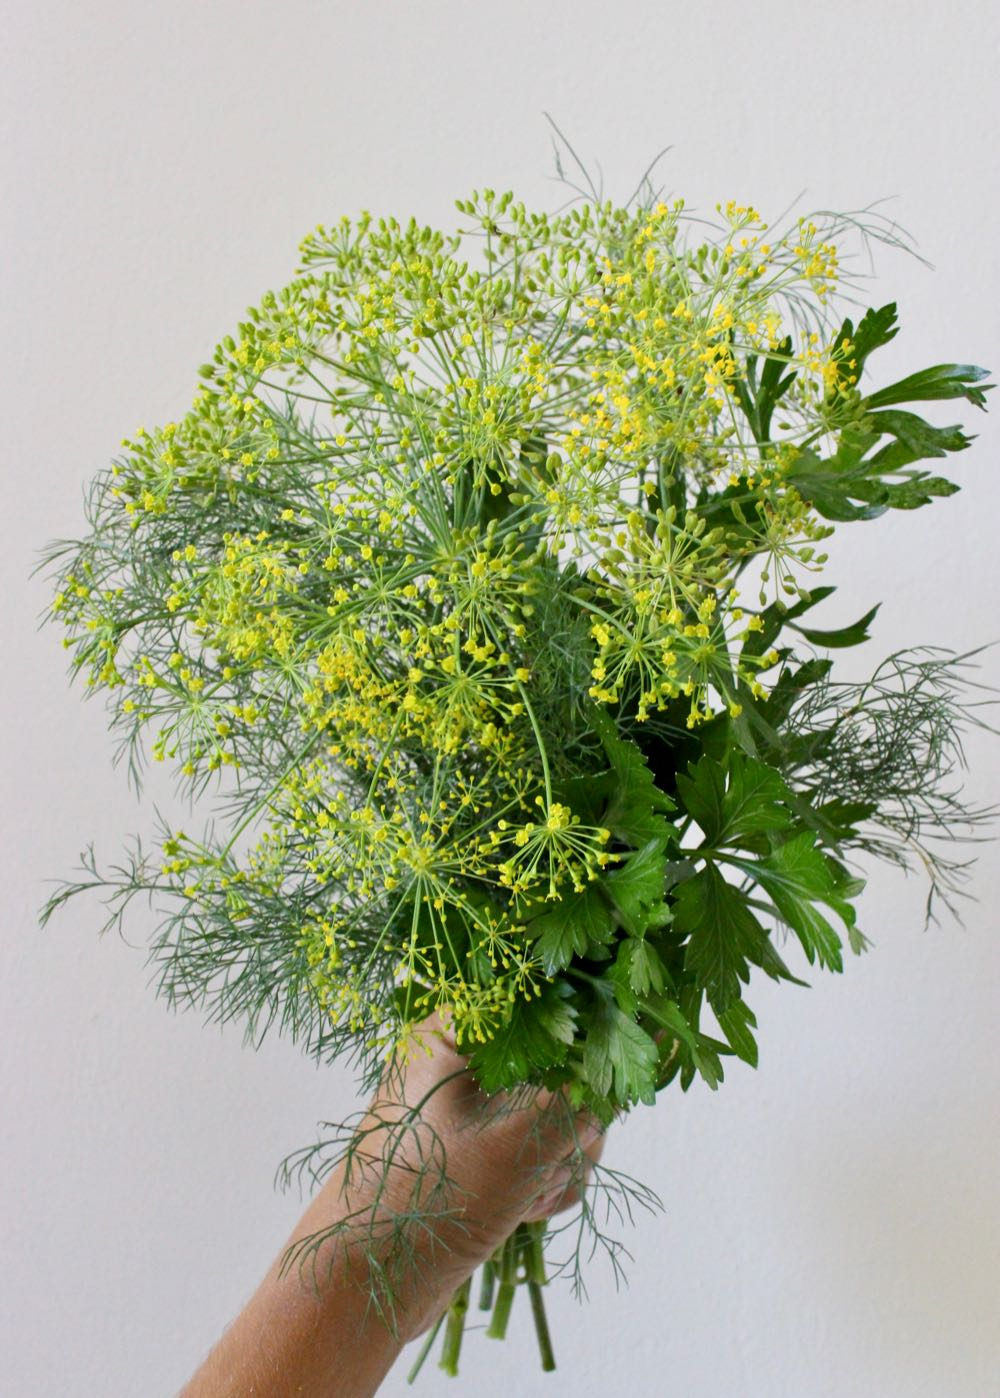 Fresh Dill and Parsley Bouquet